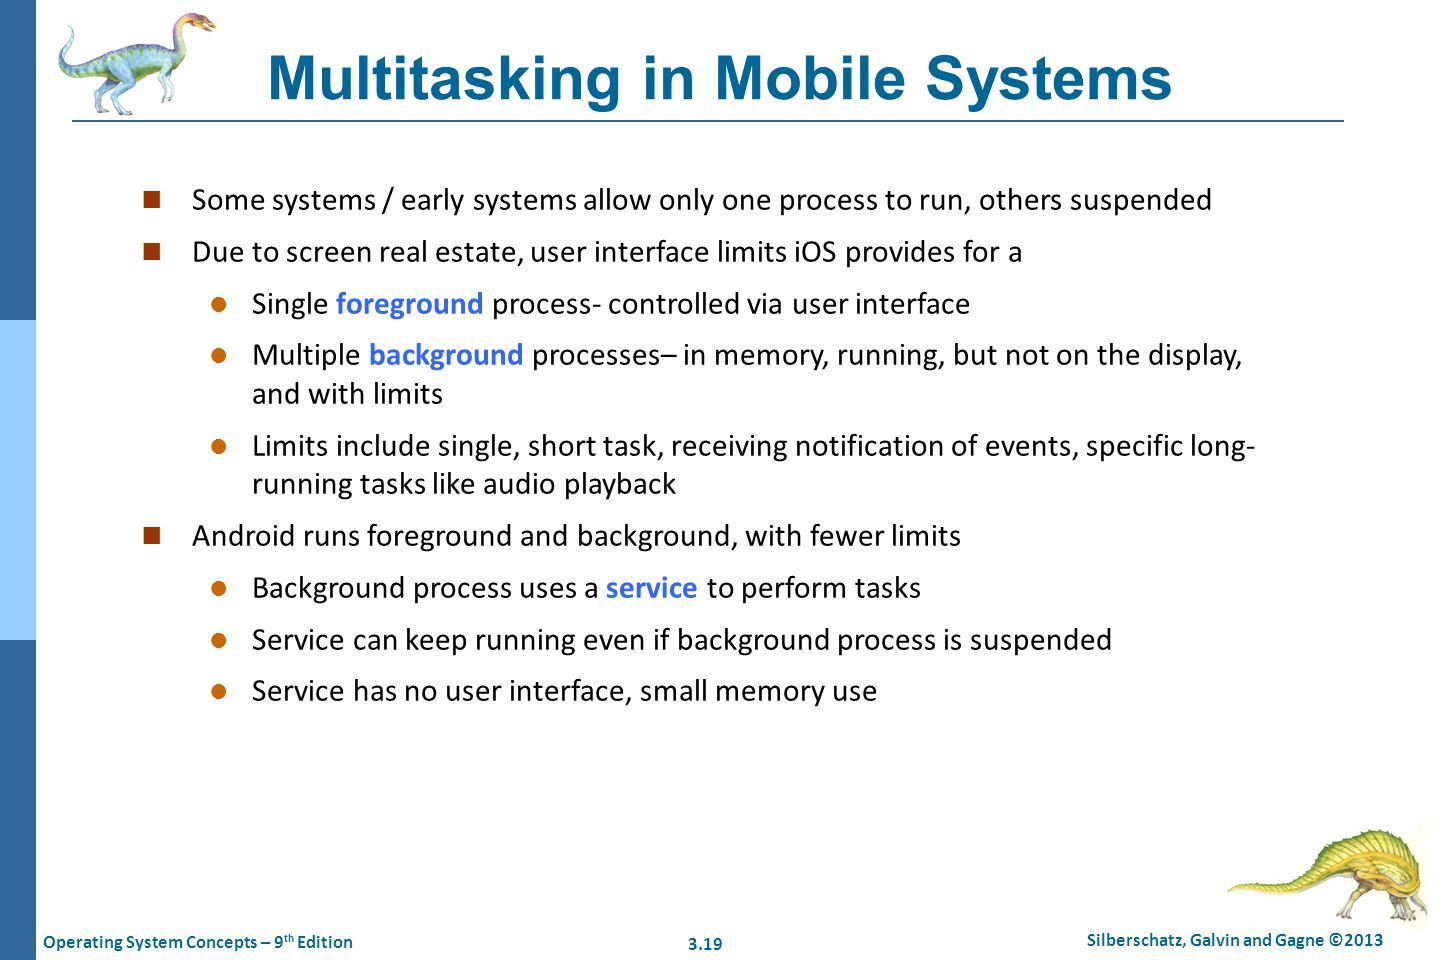 Multitasking in Mobile Systems